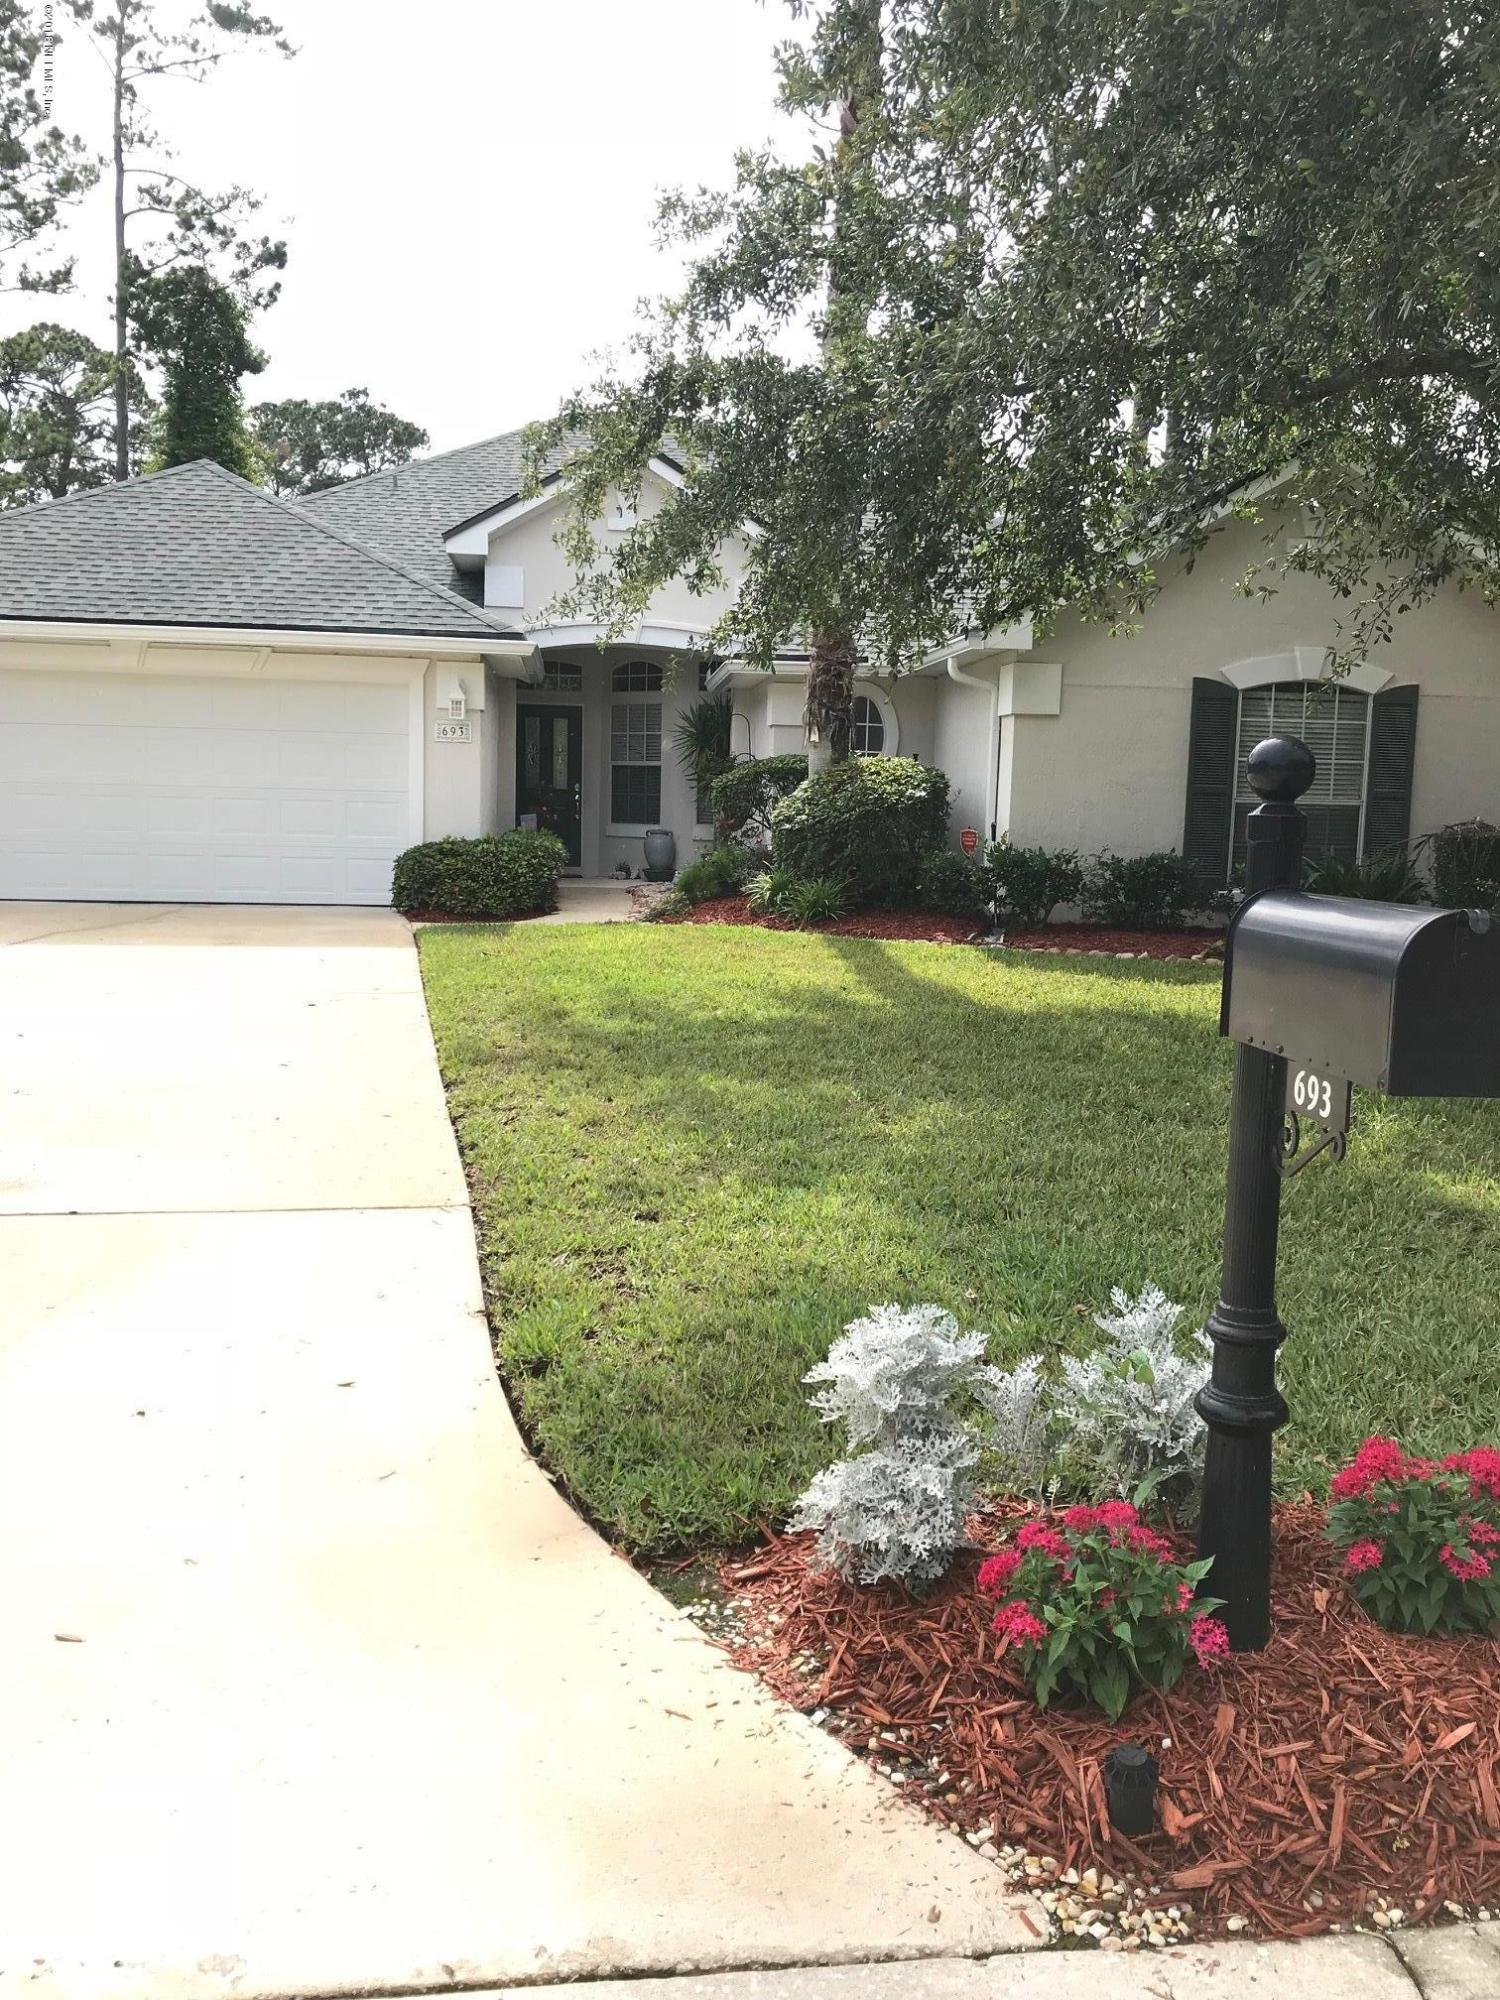 693 LAKE STONE, PONTE VEDRA BEACH, FLORIDA 32082, 4 Bedrooms Bedrooms, ,2 BathroomsBathrooms,Residential - single family,For sale,LAKE STONE,939099